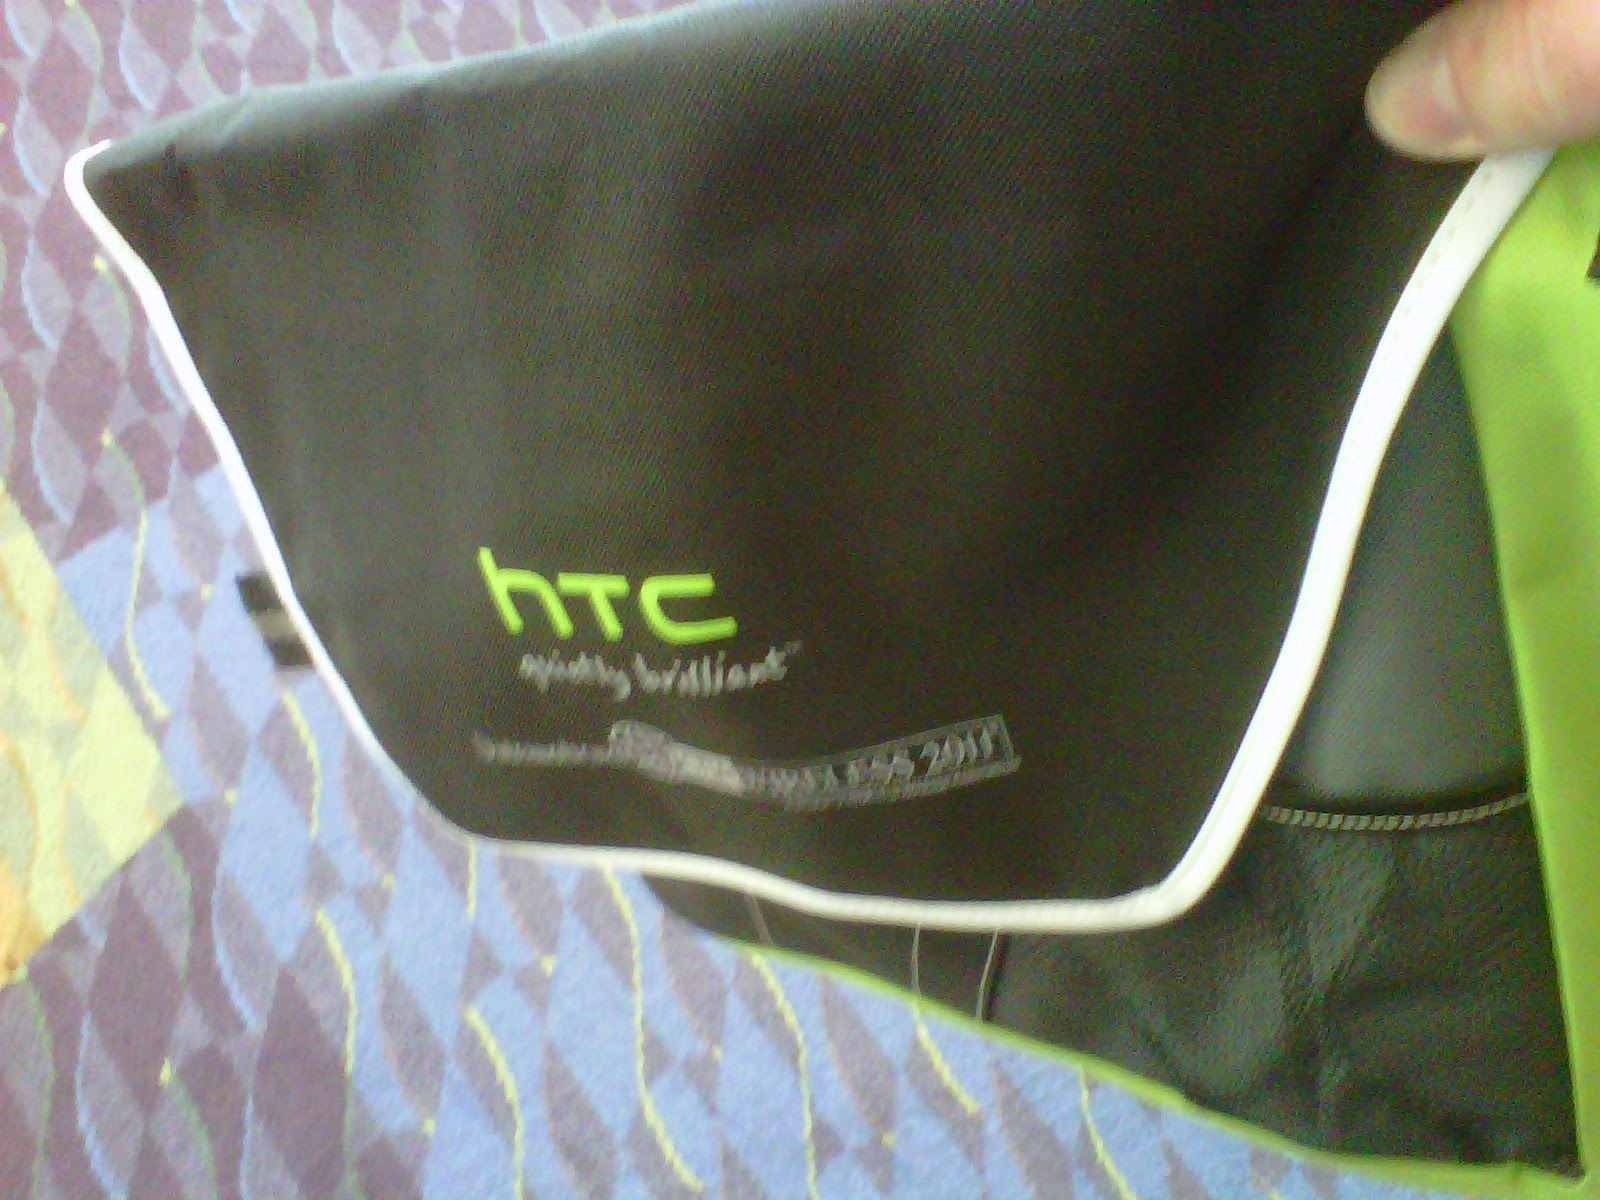 factory refurbished, New York, HTC wholesaler, One X, MidwestGSM trading floor,